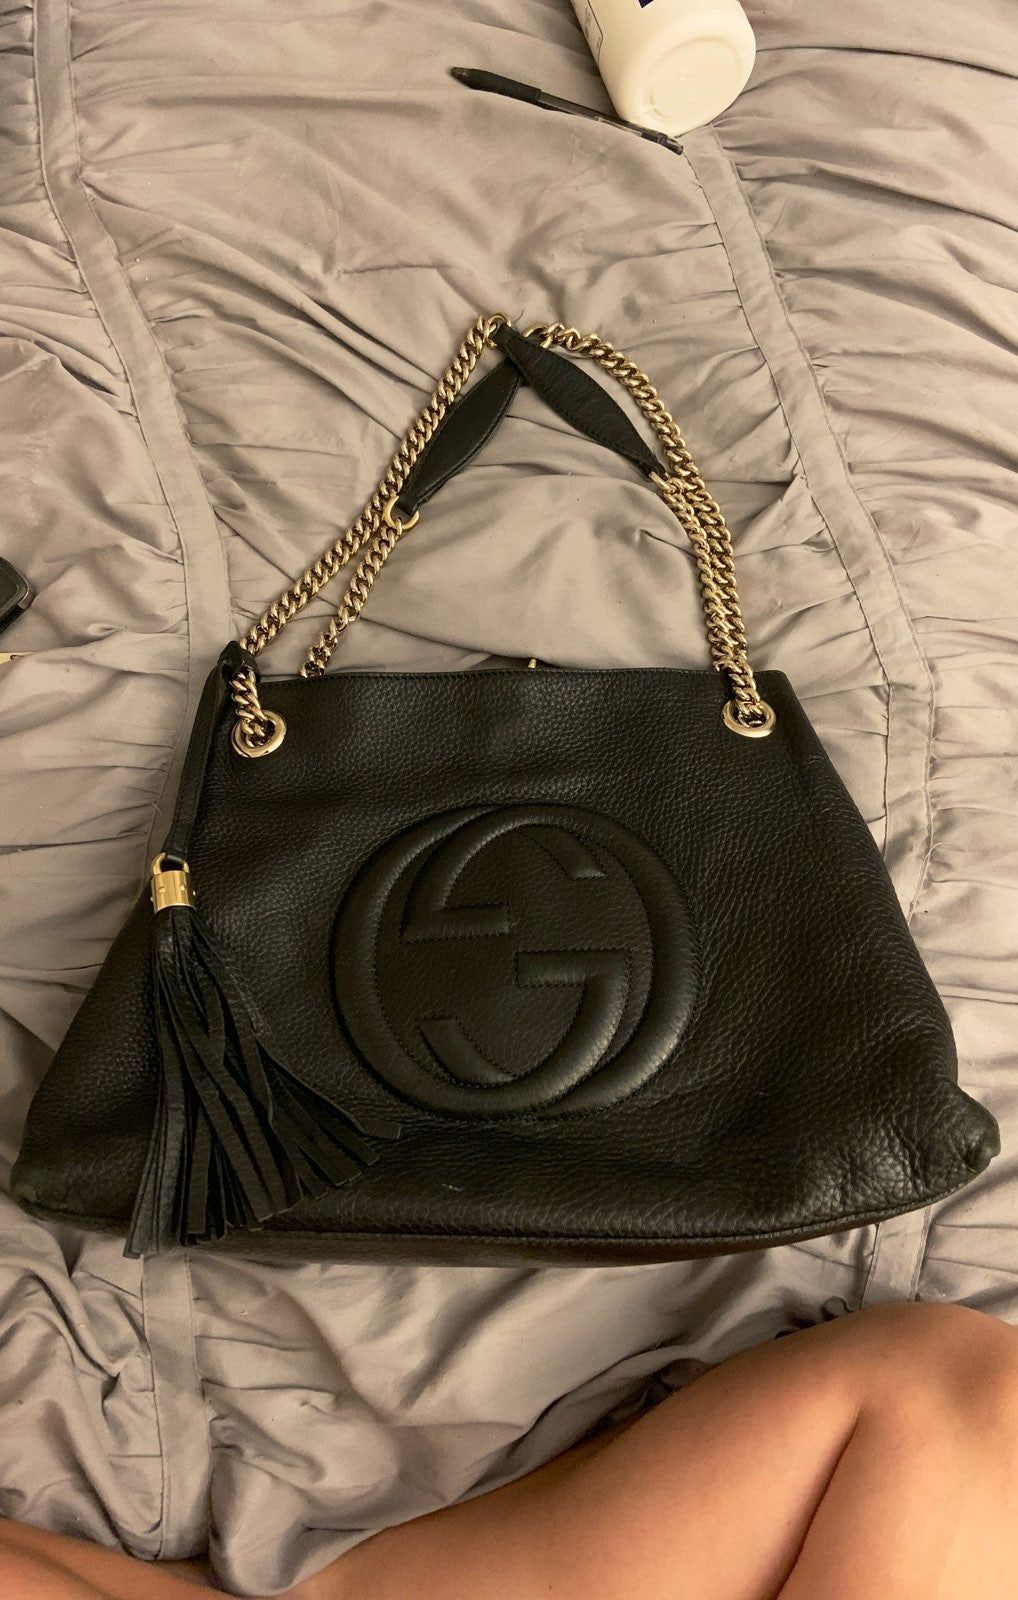 100% Authentic Gucci Medium Leather Soho Bag. Purchased from